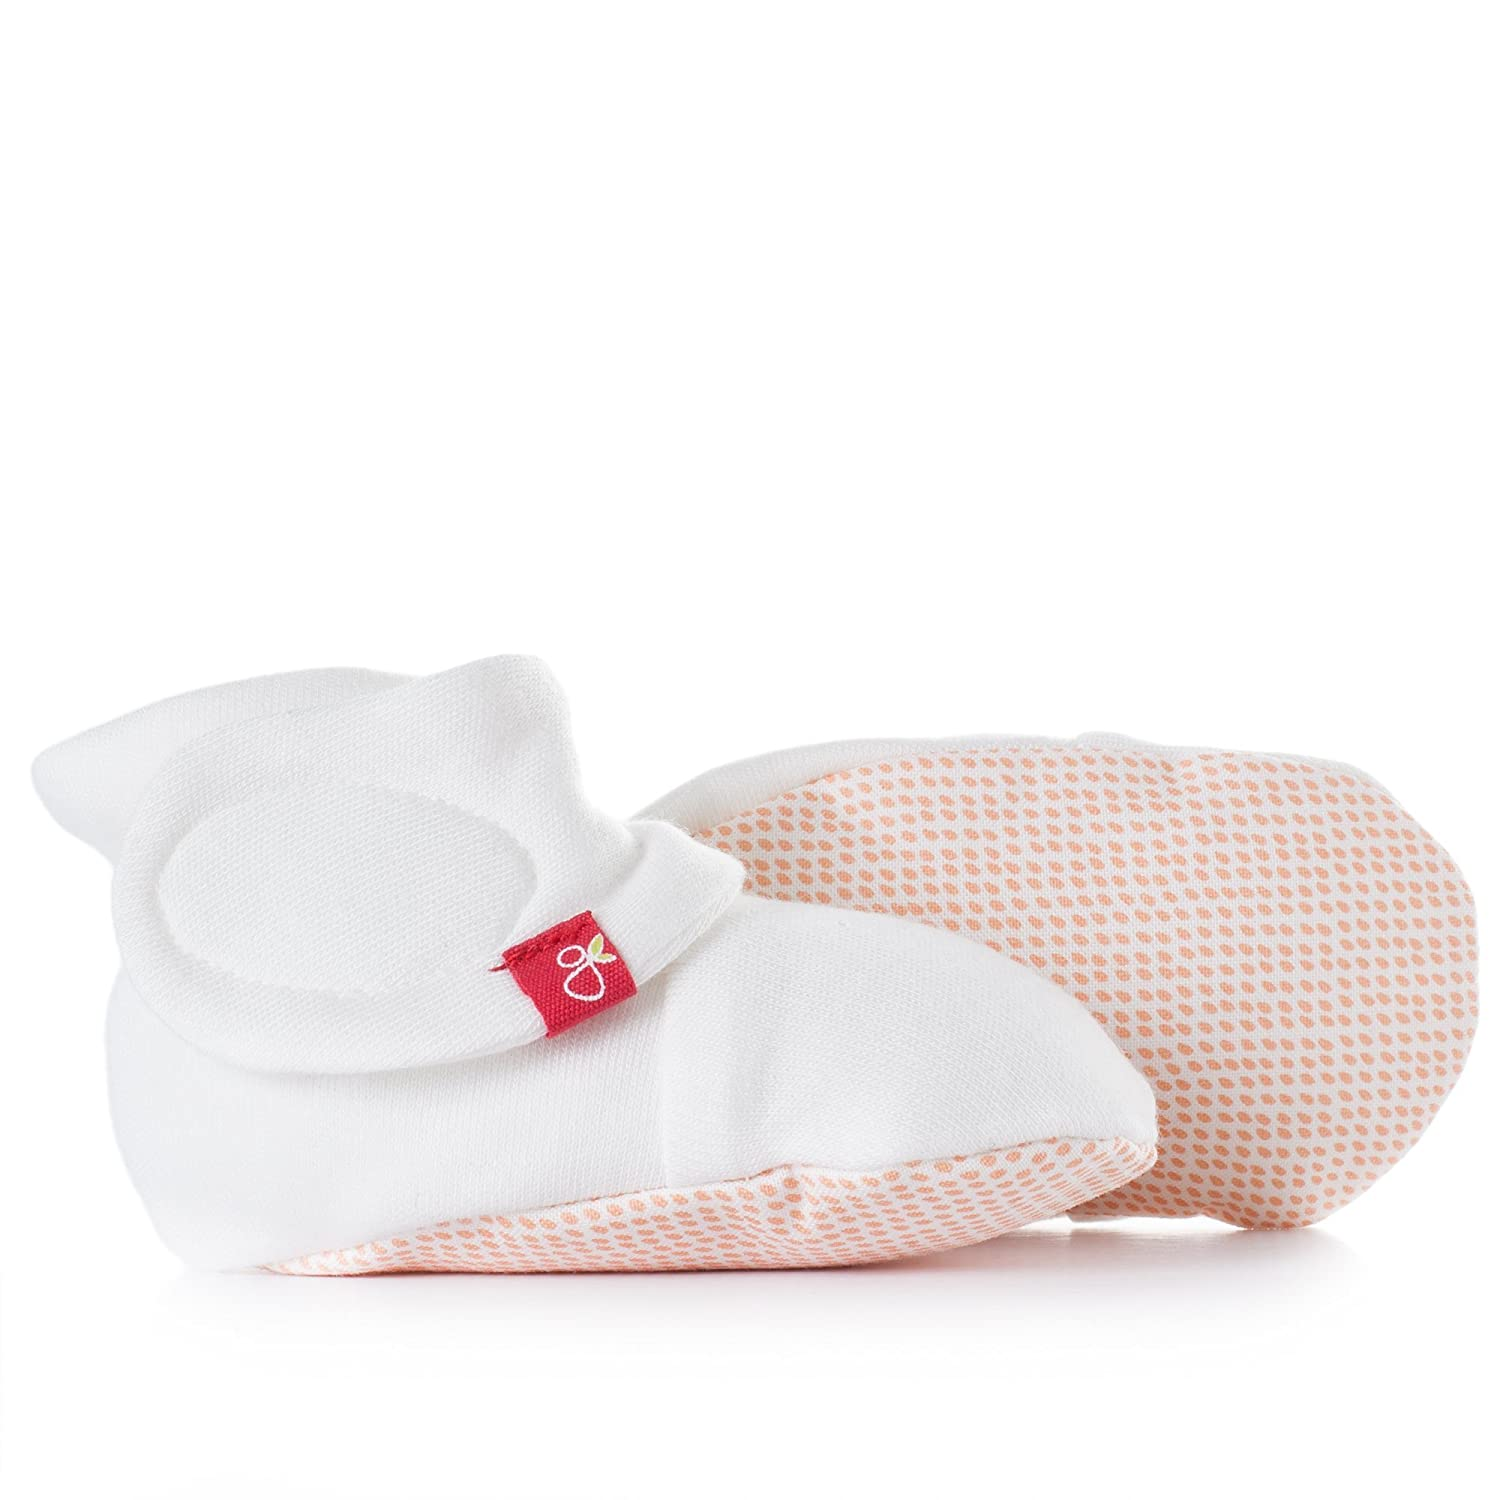 Goumikids - Goumiboots, Soft Stay On Booties Keeps Feet Warm and Adjusts to Fit as Baby Grows